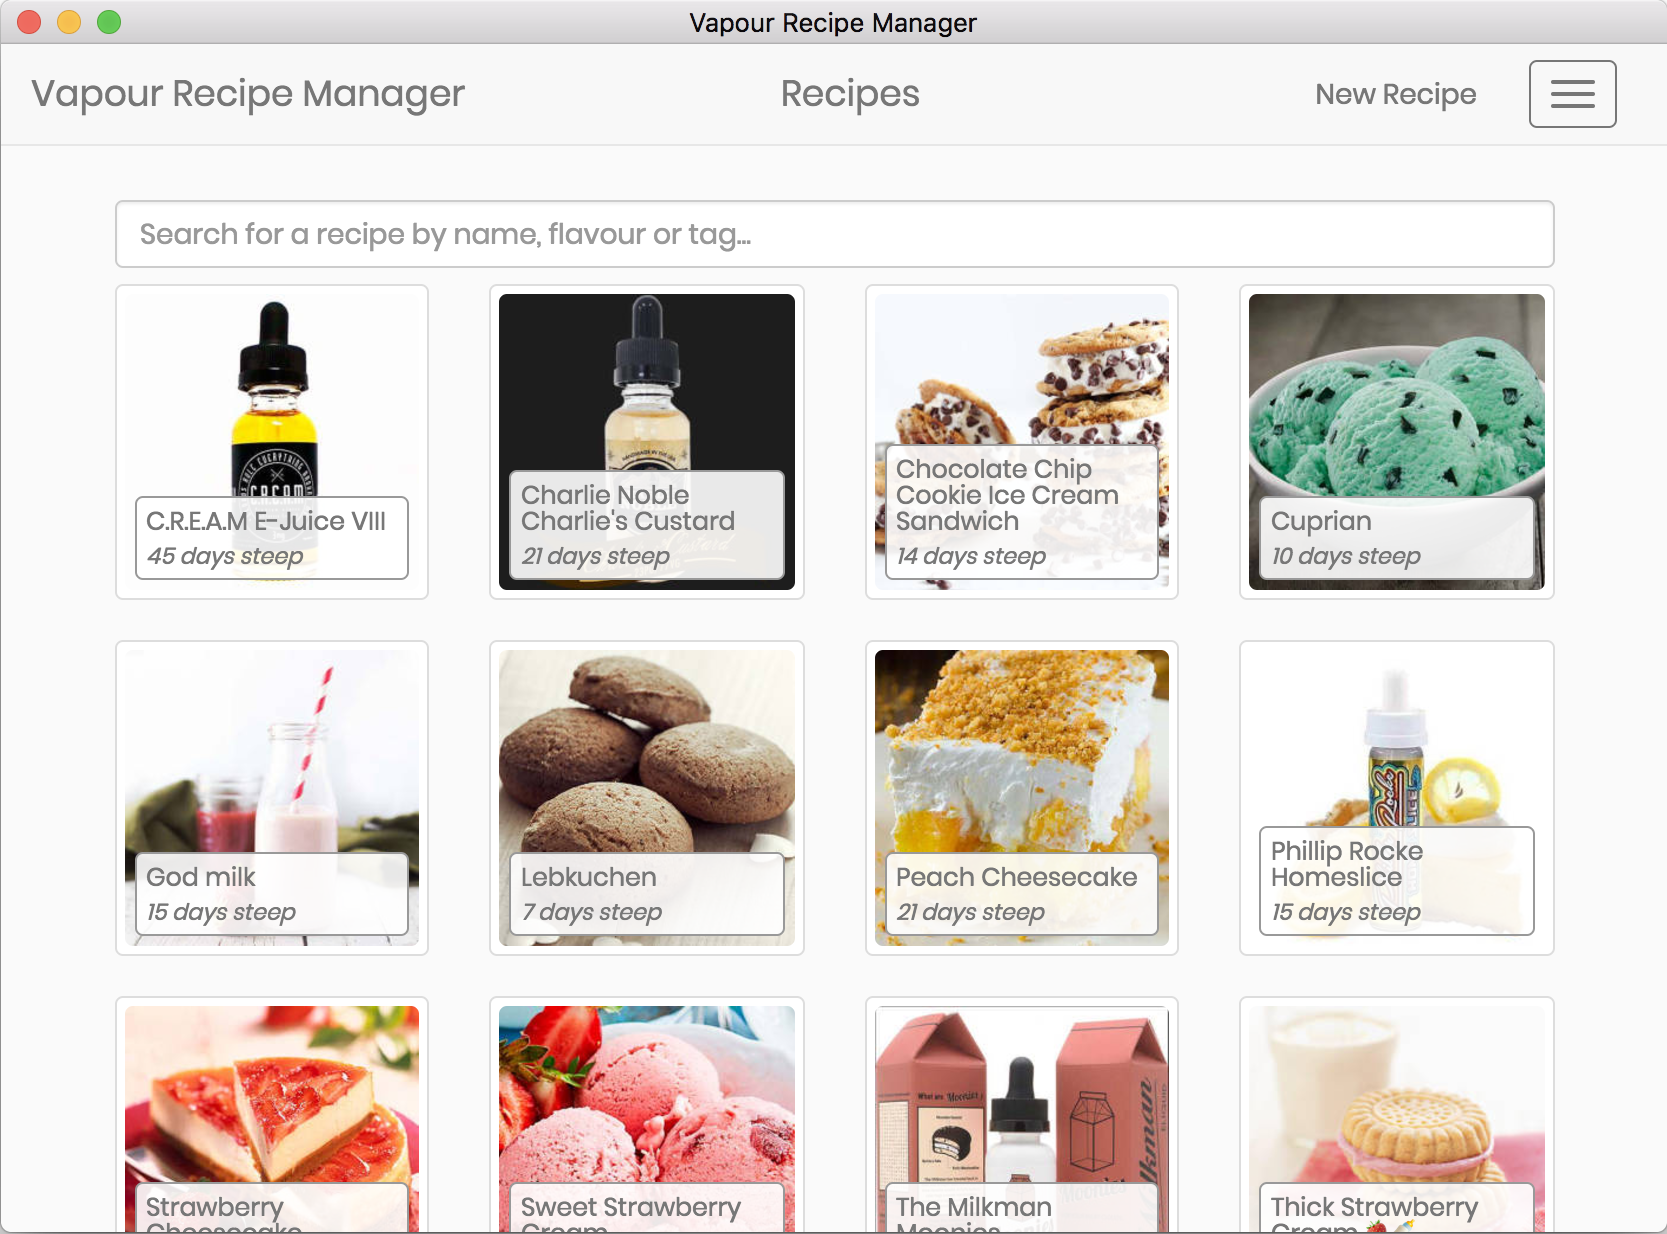 Vapour Recipe Manager